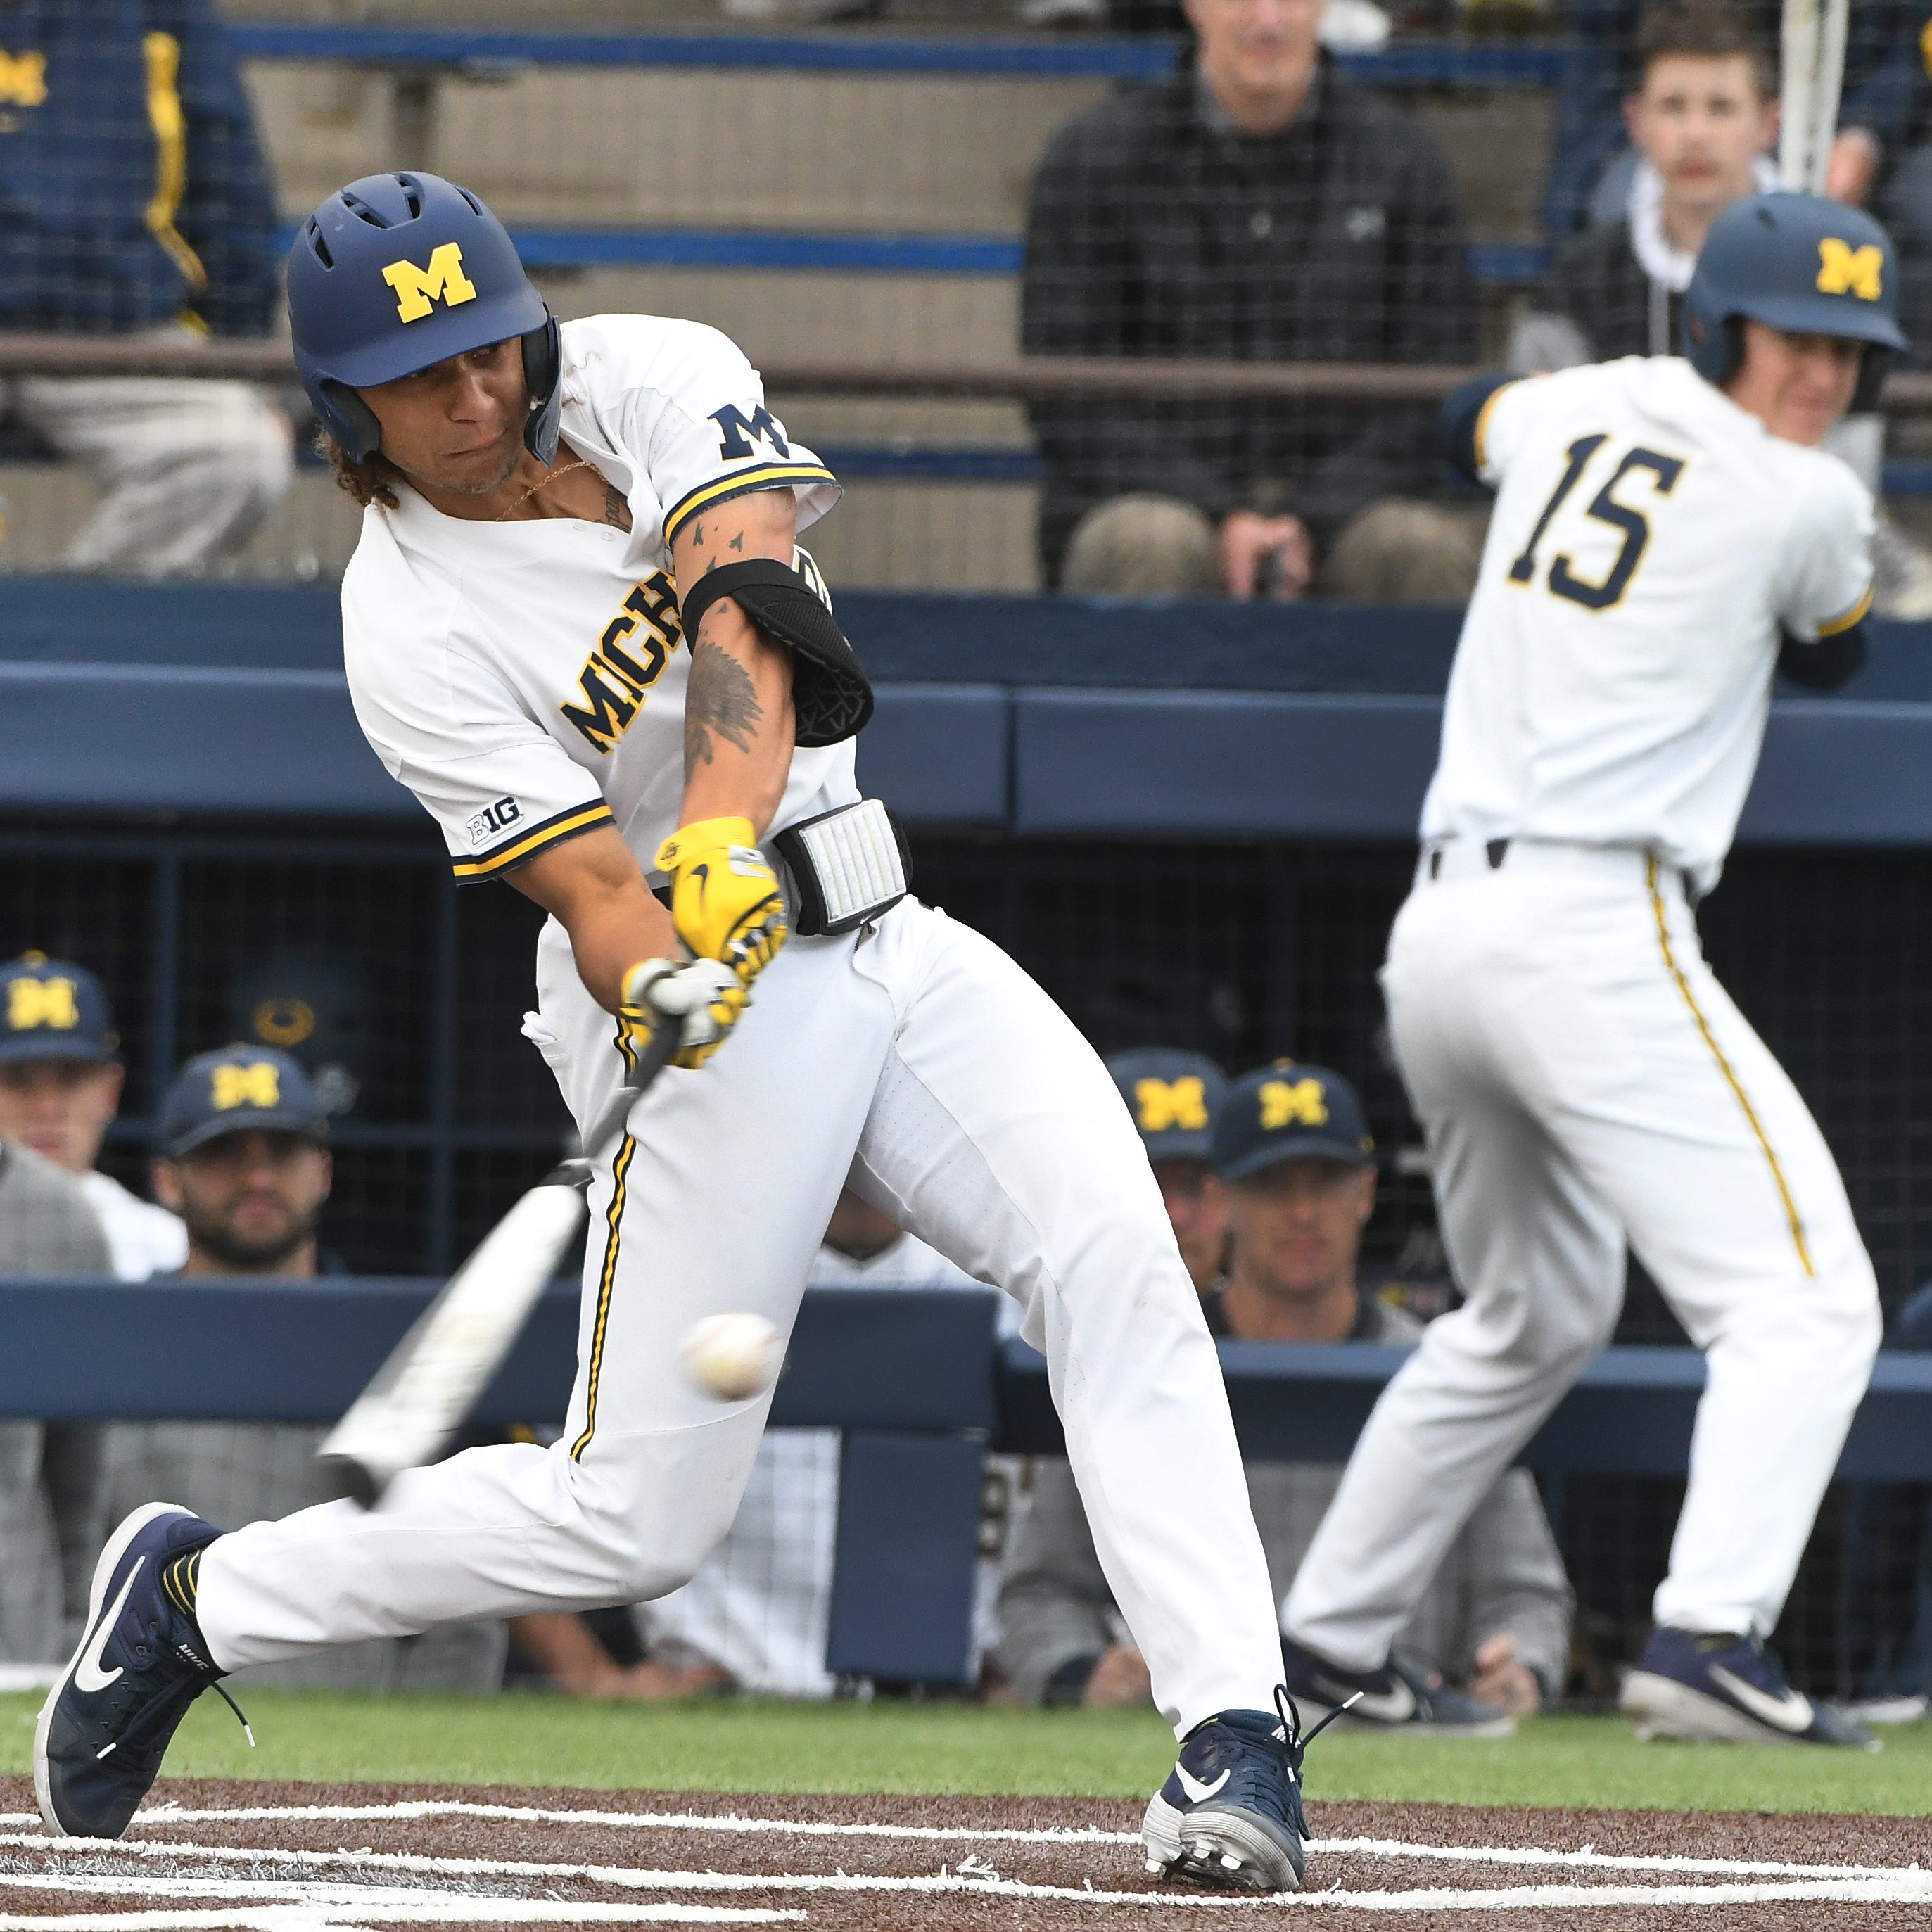 Michigan baseball makes its case for NCAA bid